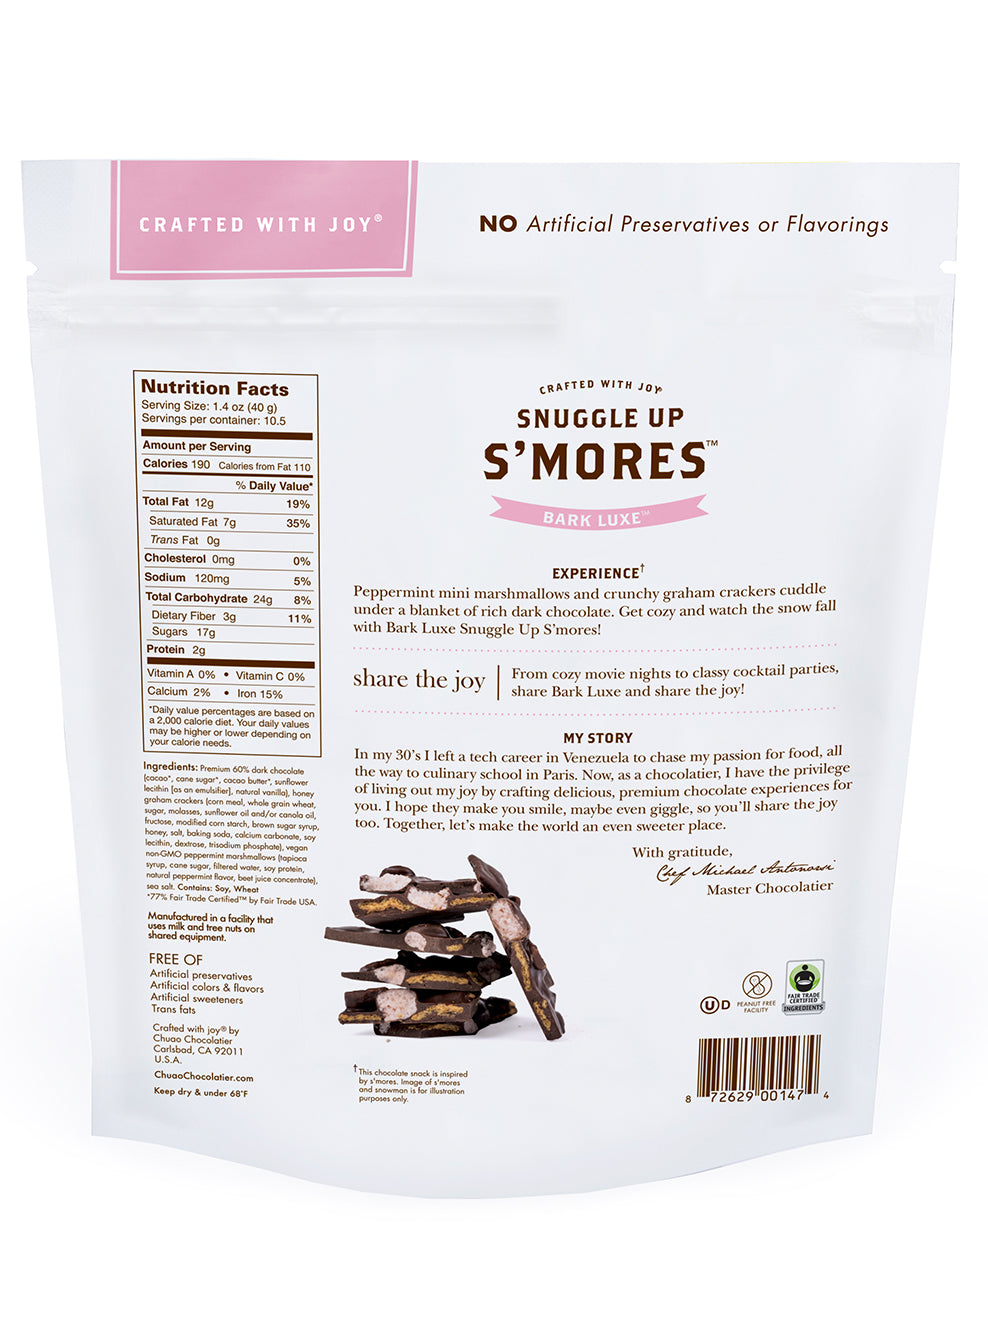 Bark Luxe Snuggle Up S'mores